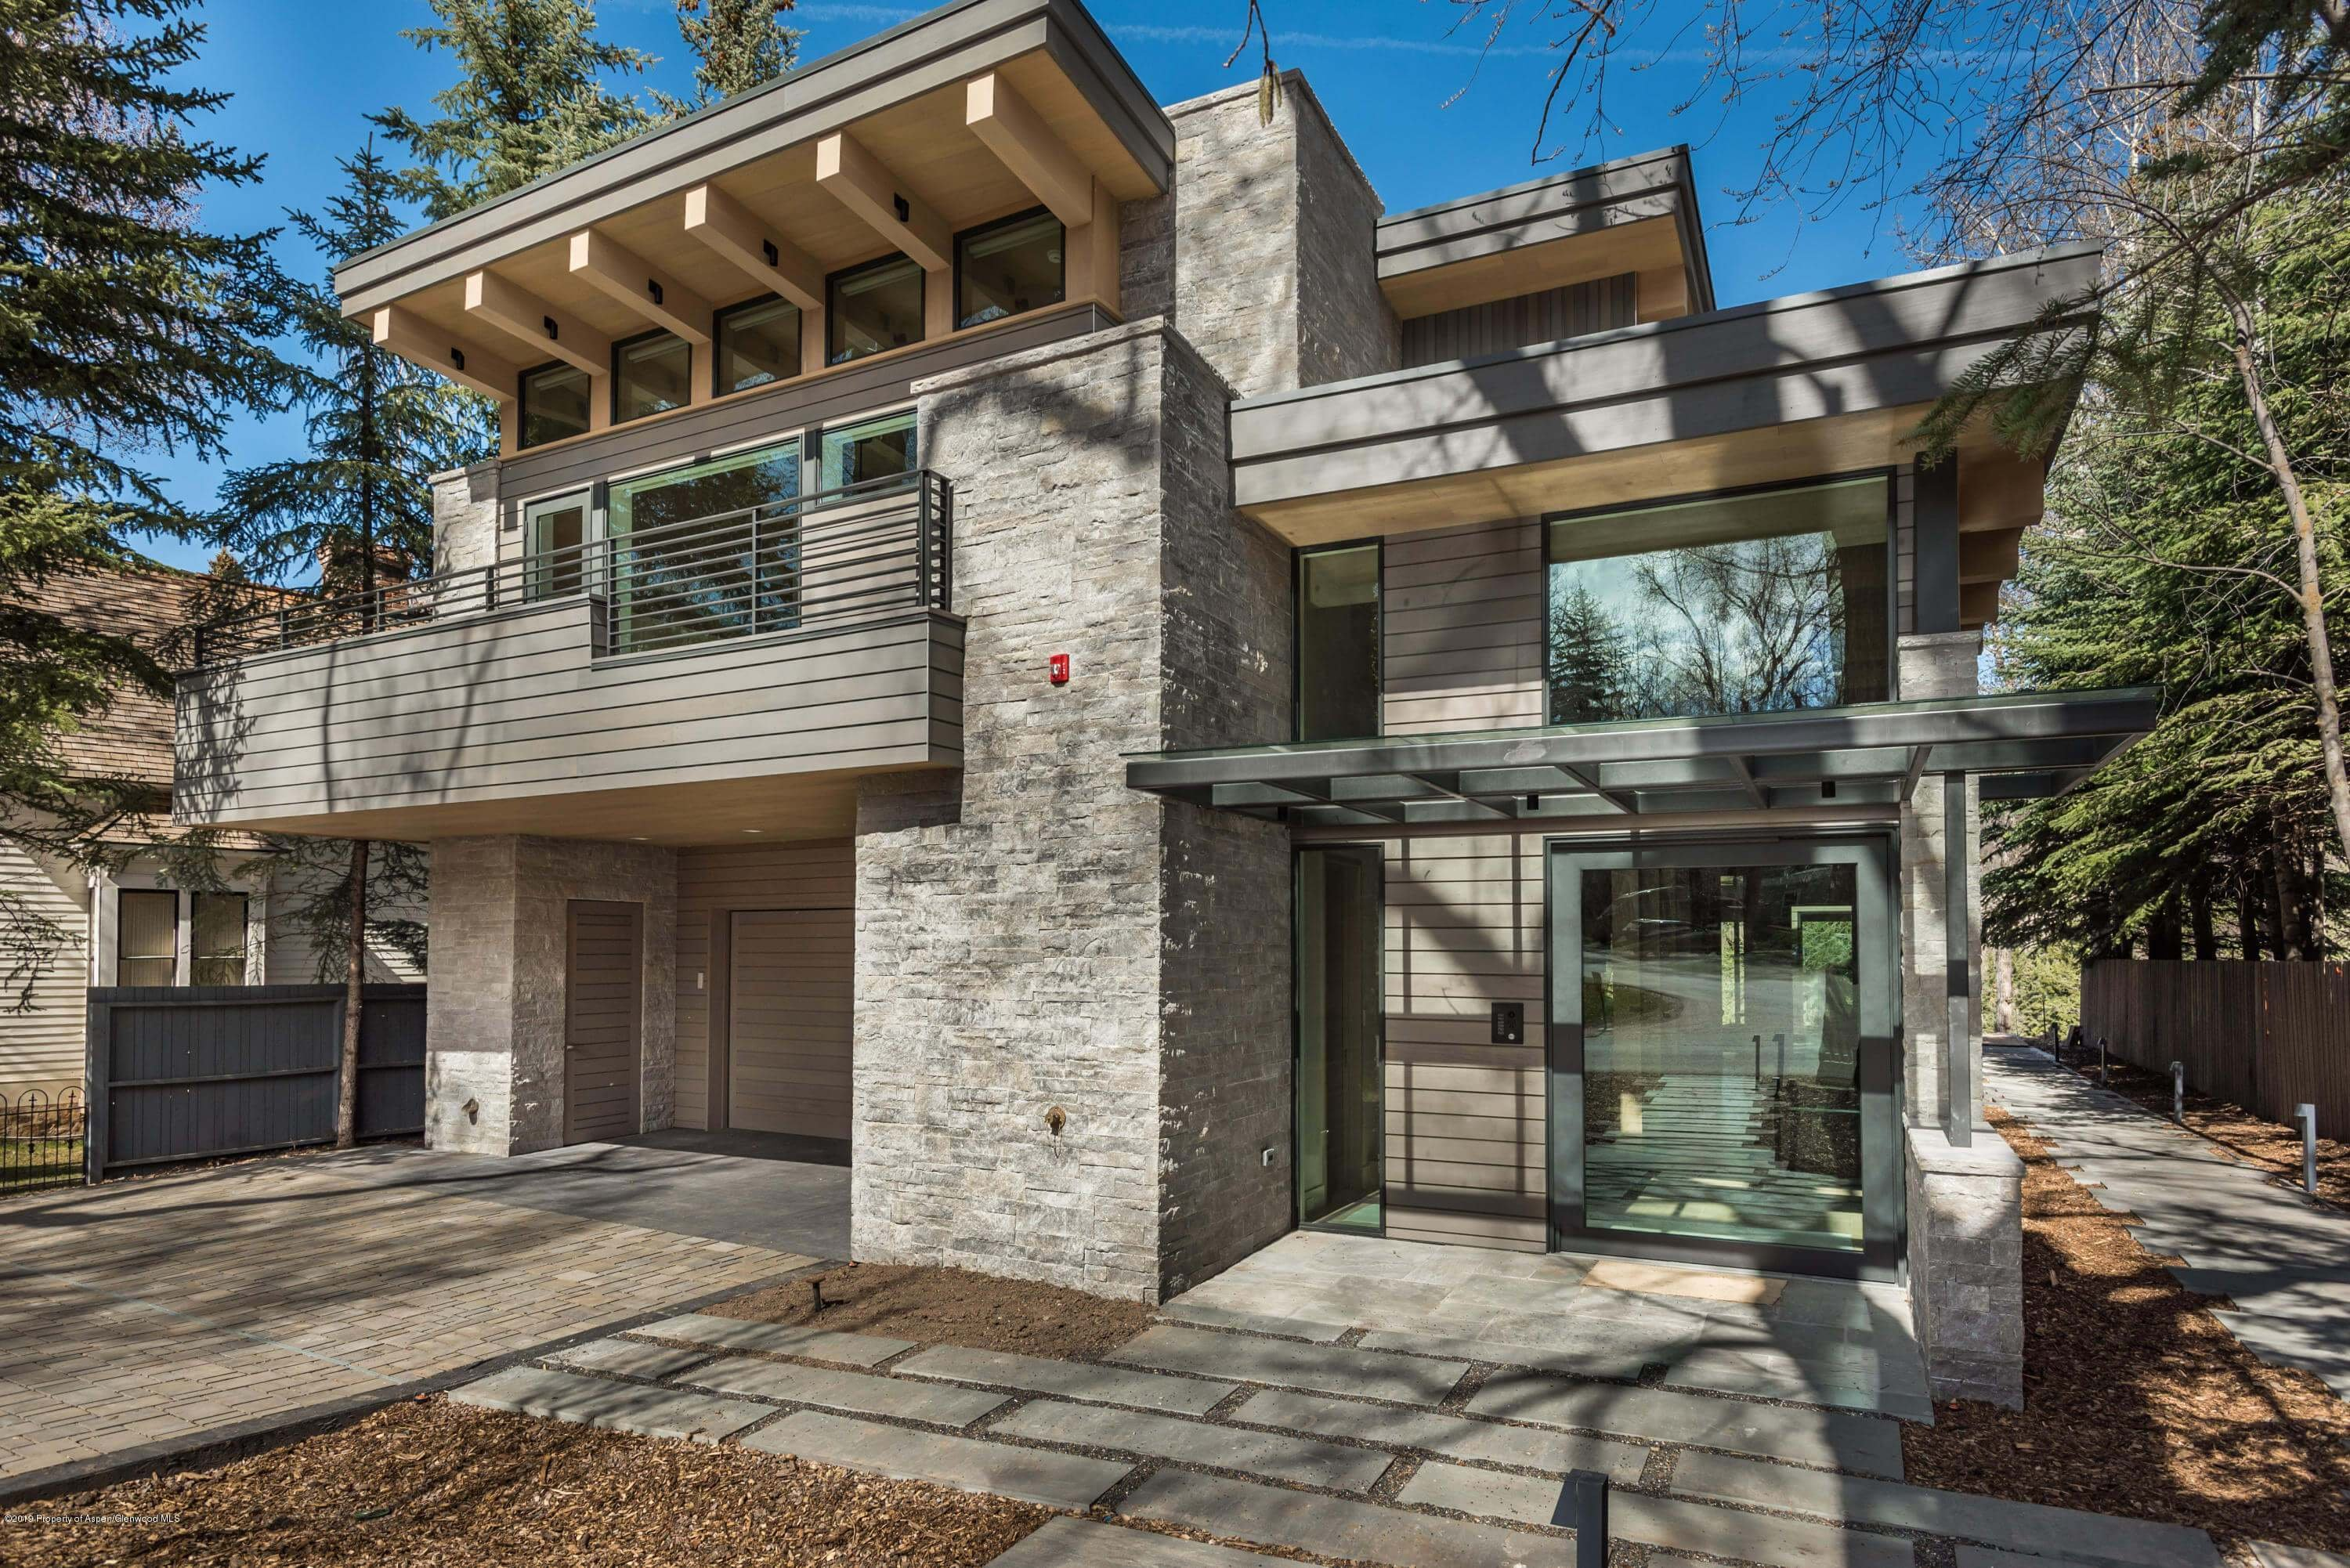 300 Lake Ave, Aspen, CO – Developer Flip: Pd $9.16M Lot Value; Re-listed for Sale at $23.9M/$4,282 Sq Ft Thumbnail